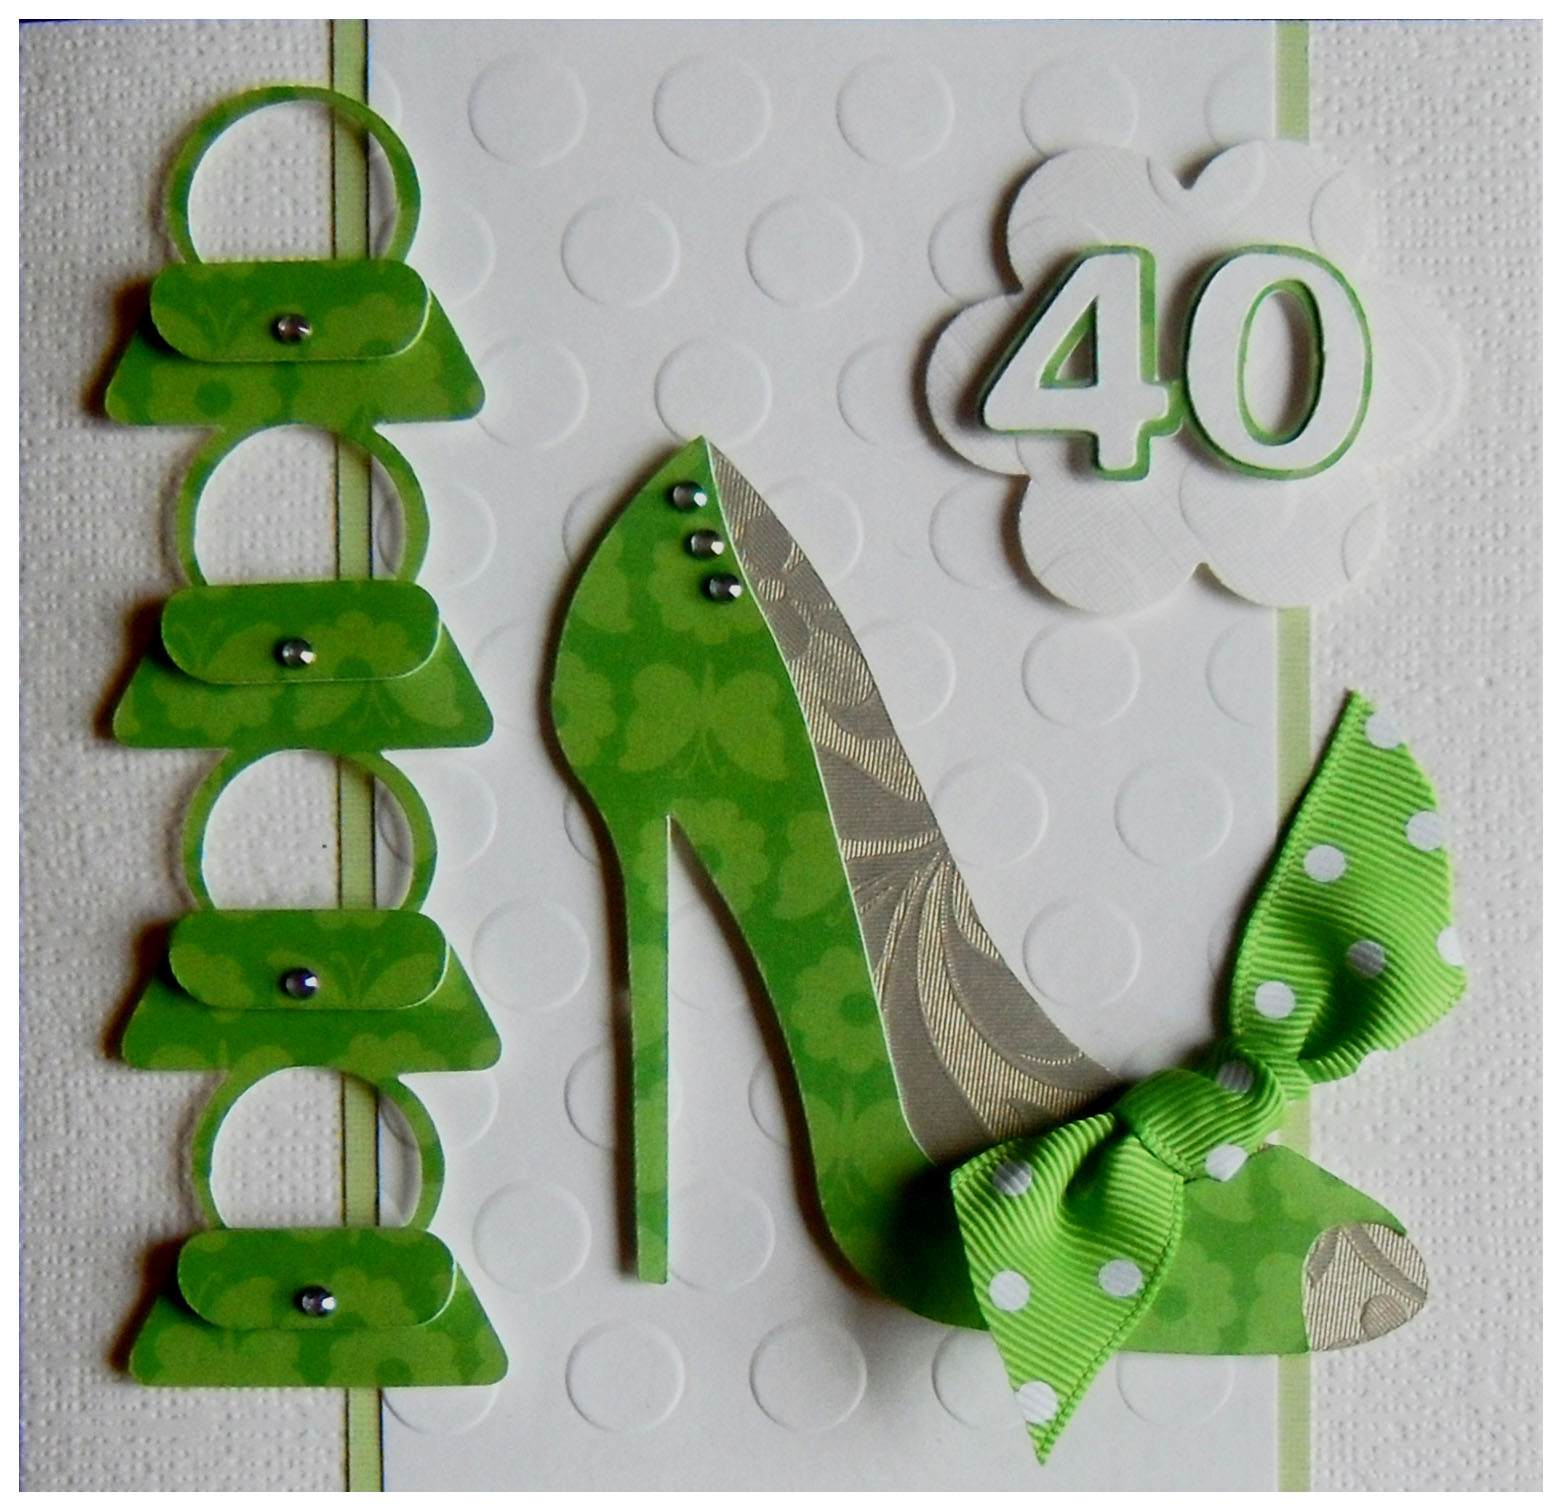 Claire's Cards: **************** 40th Birthday Card For A